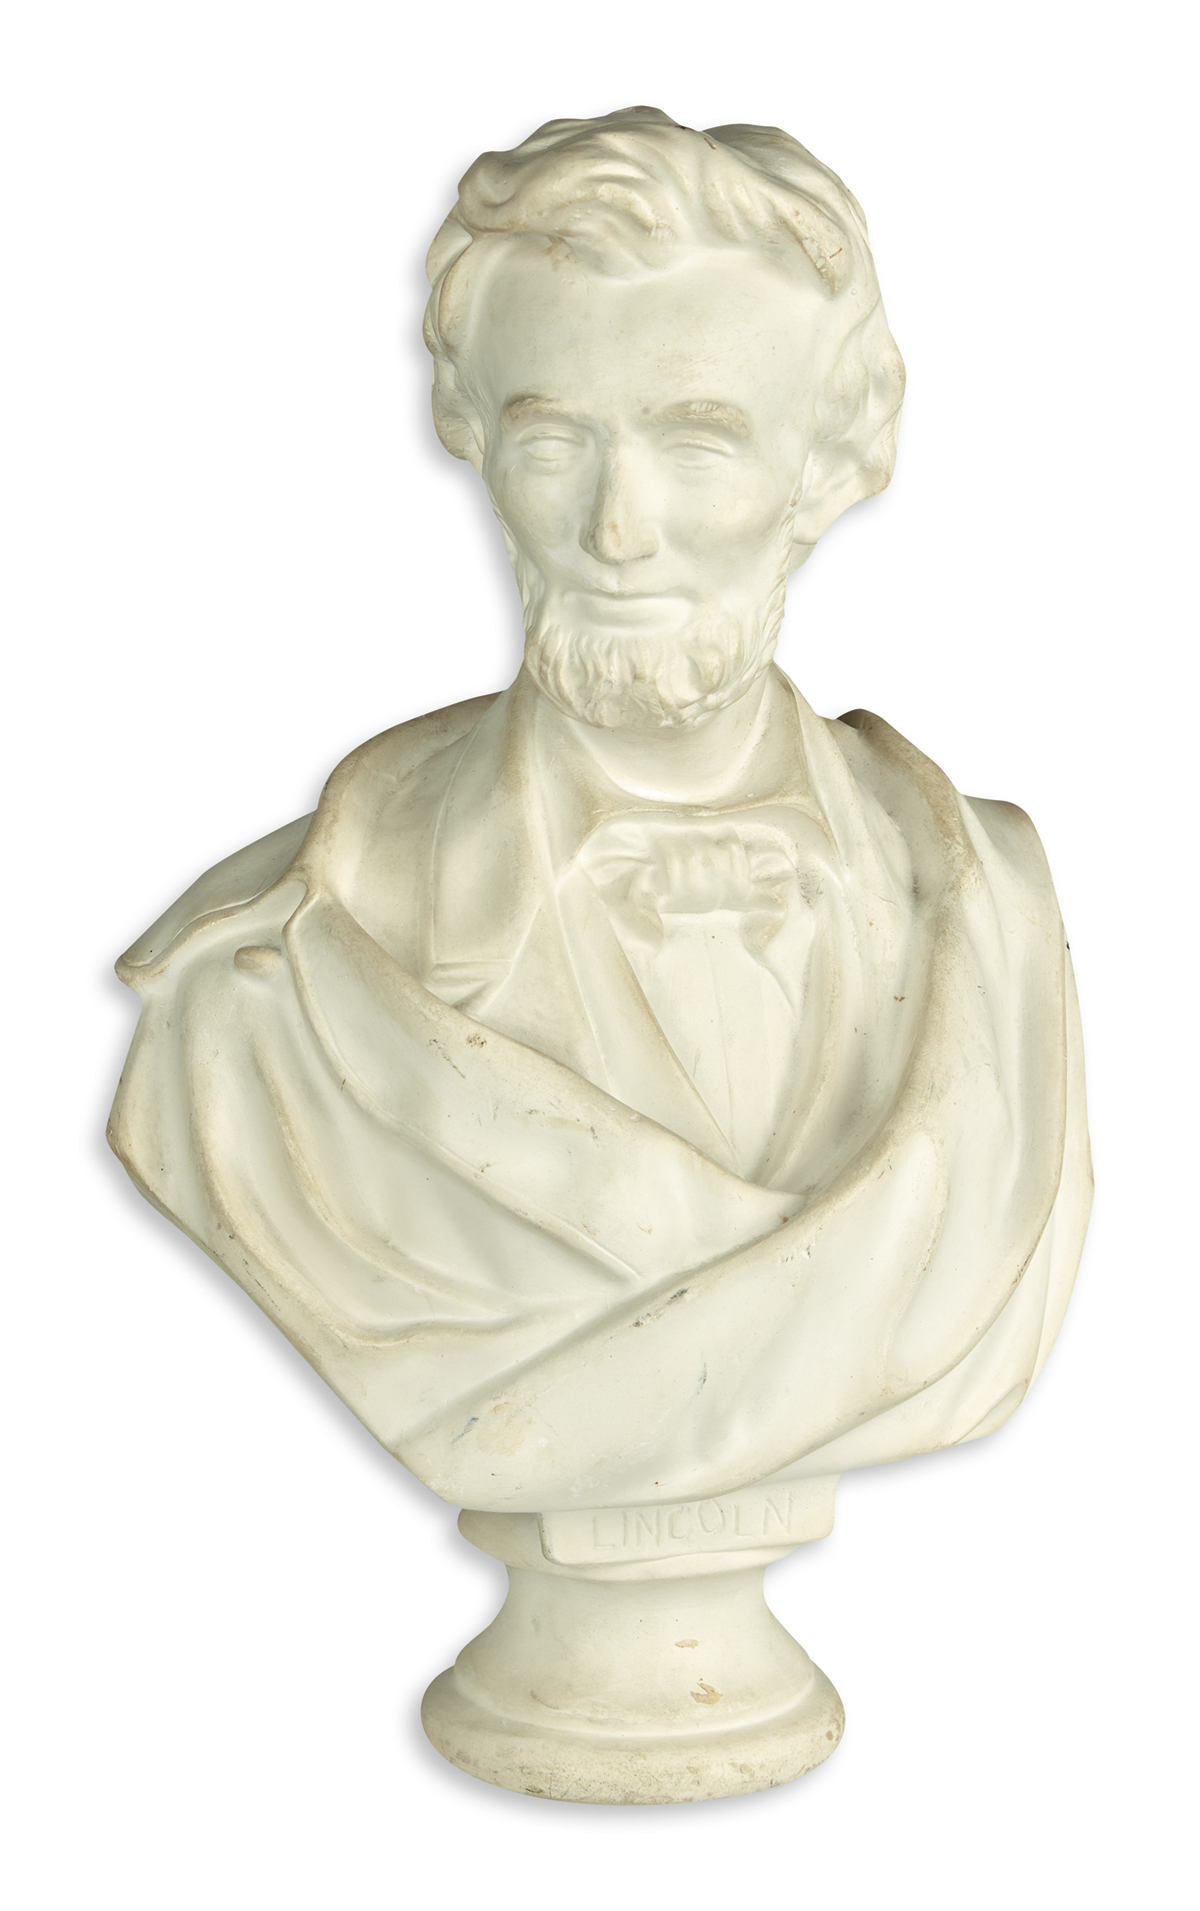 (SCULPTURE)-Pair-of-copies-of-important-early-Lincoln-sculpt